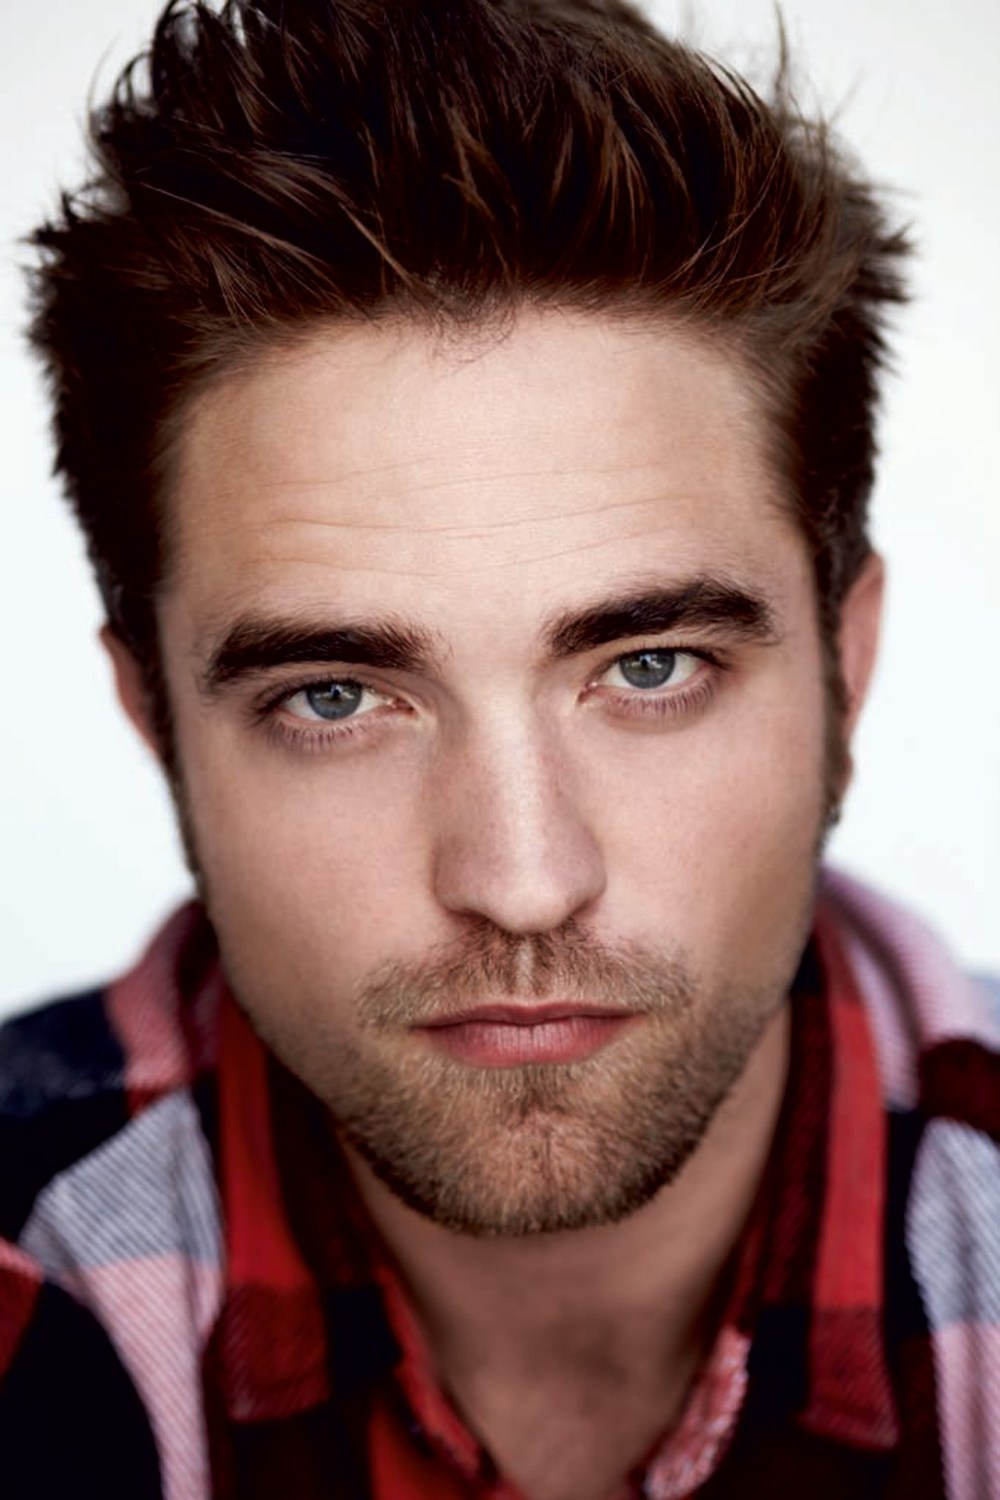 robert-pattinson-vogue-12jun13-pr_b